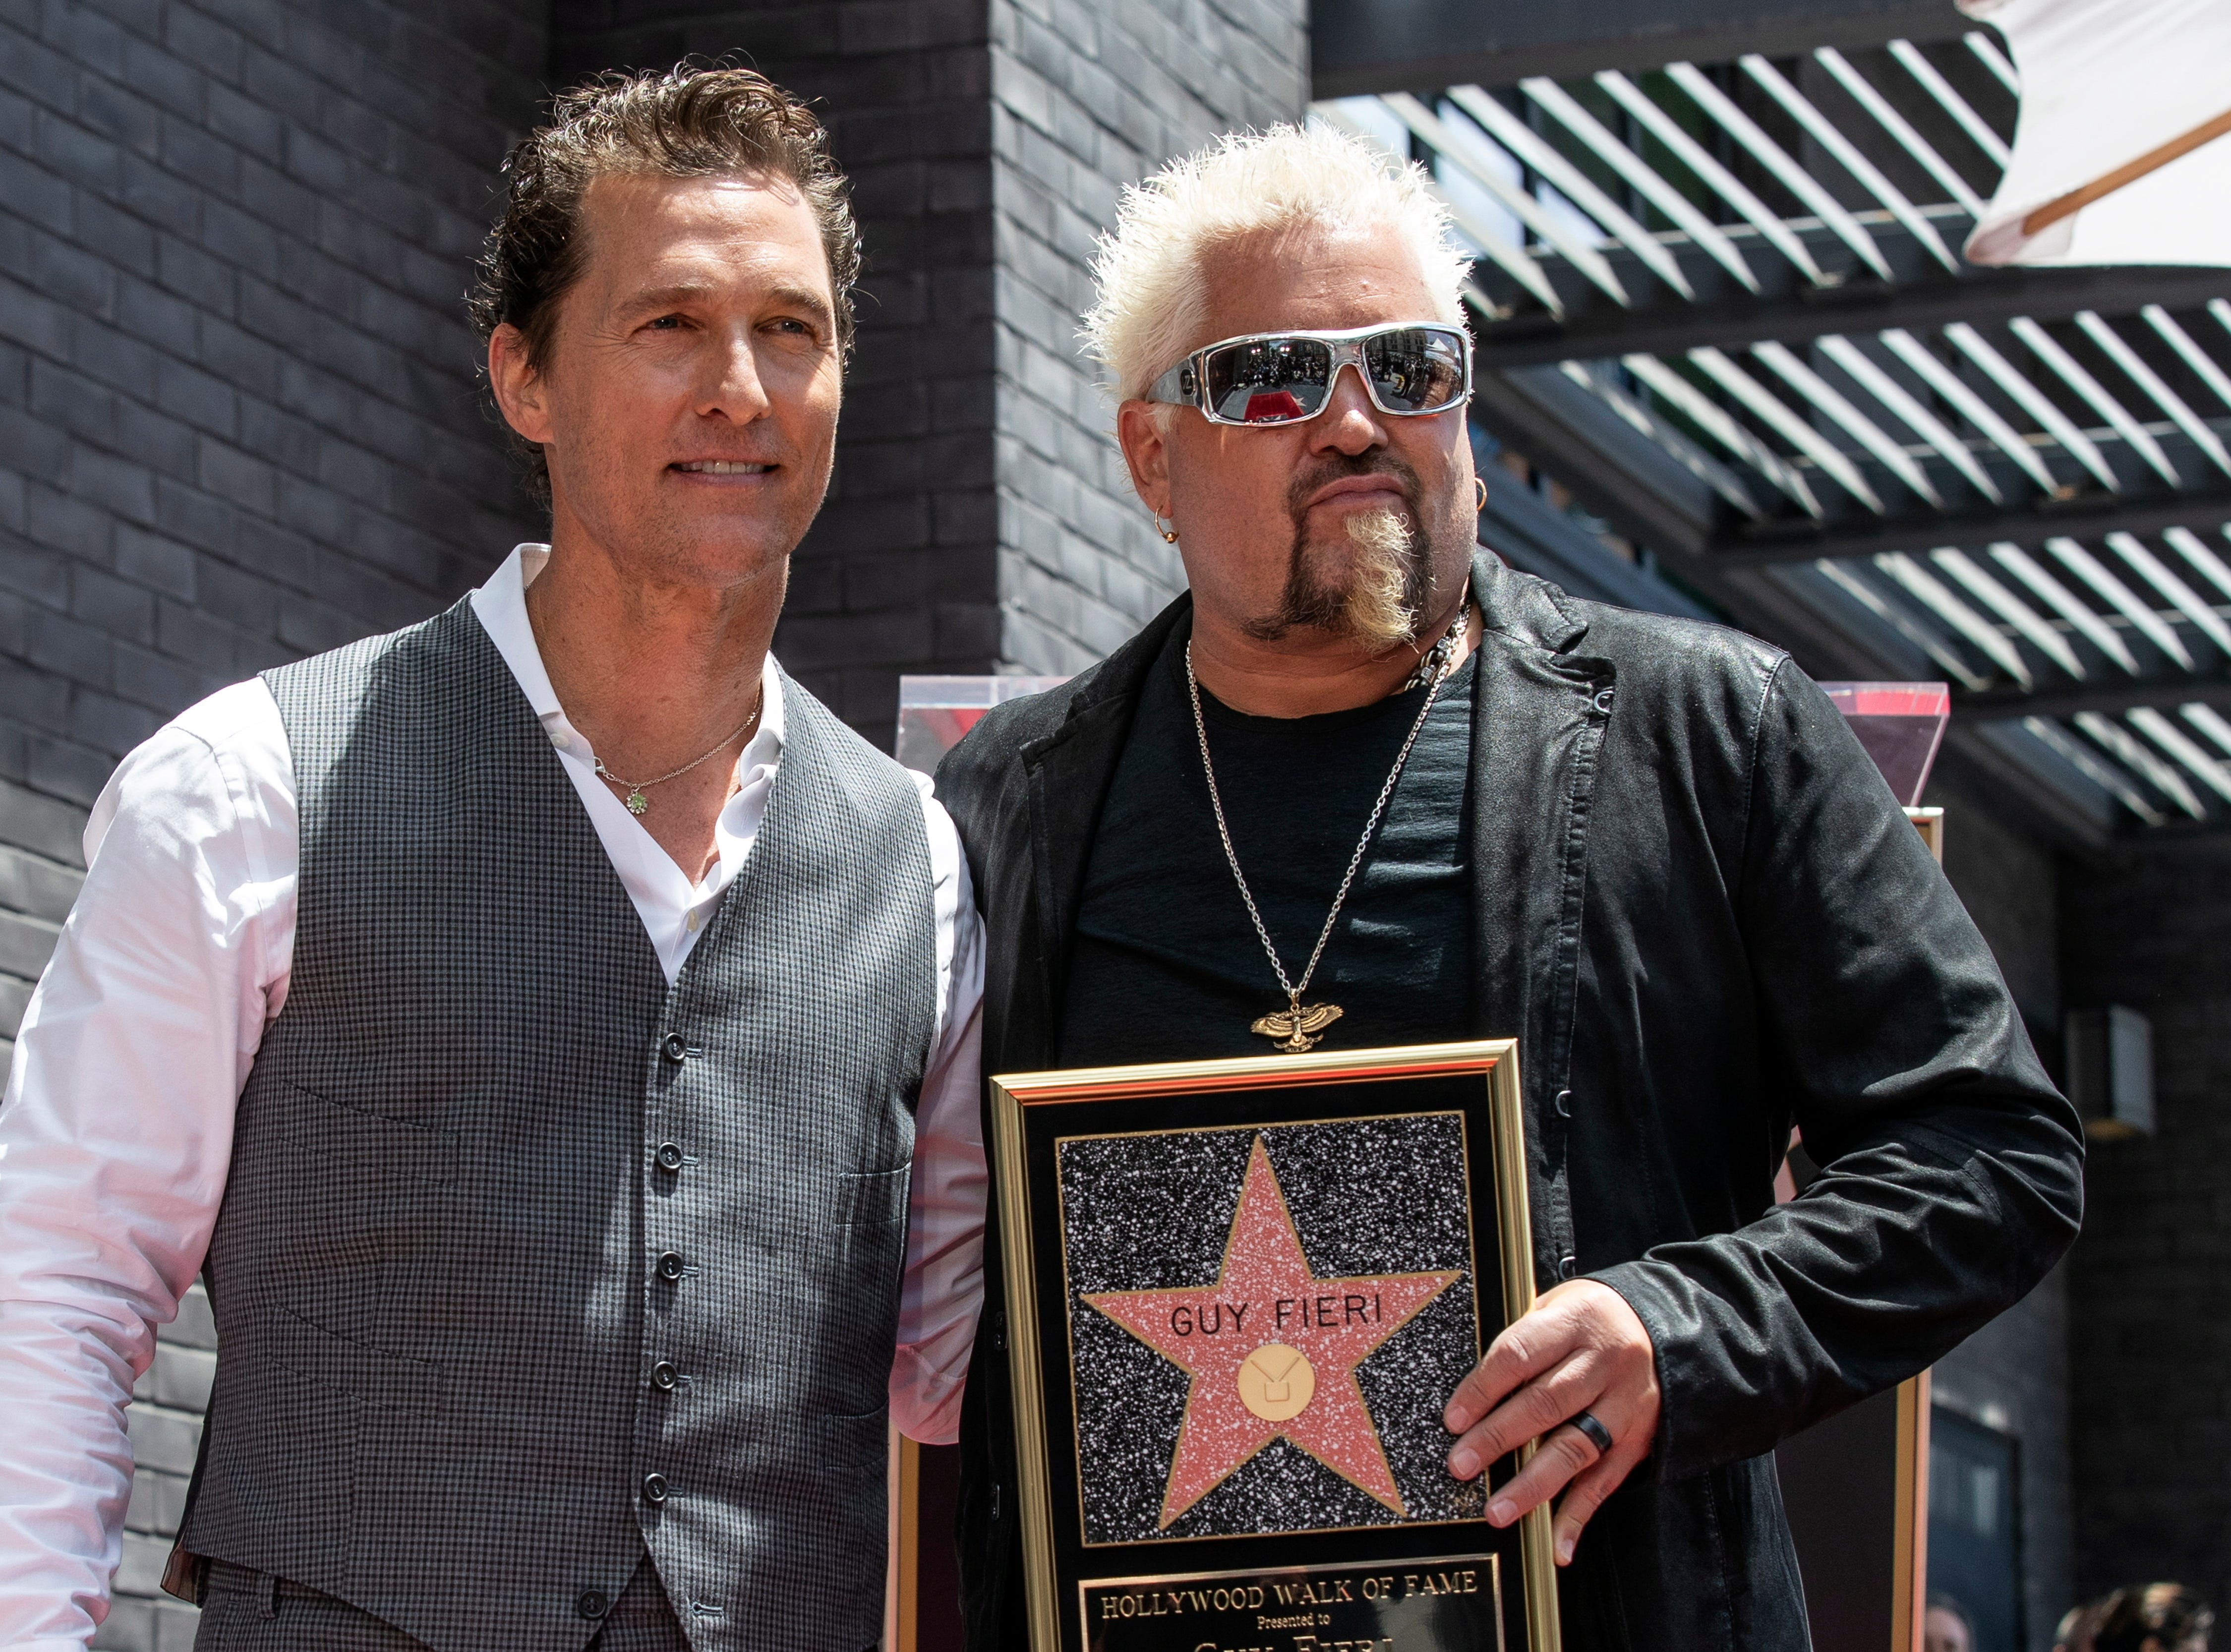 Chef and TV personality Guy Fieri, right, poses for a photograph with US actor Matthew McConaughey after he unveiled his star on the Hollywood Walk of Fame in Hollywood, Calif. on May 22, 2019. The star, the 2,664th and third to be given to a chef, was dedicated in the category of television.